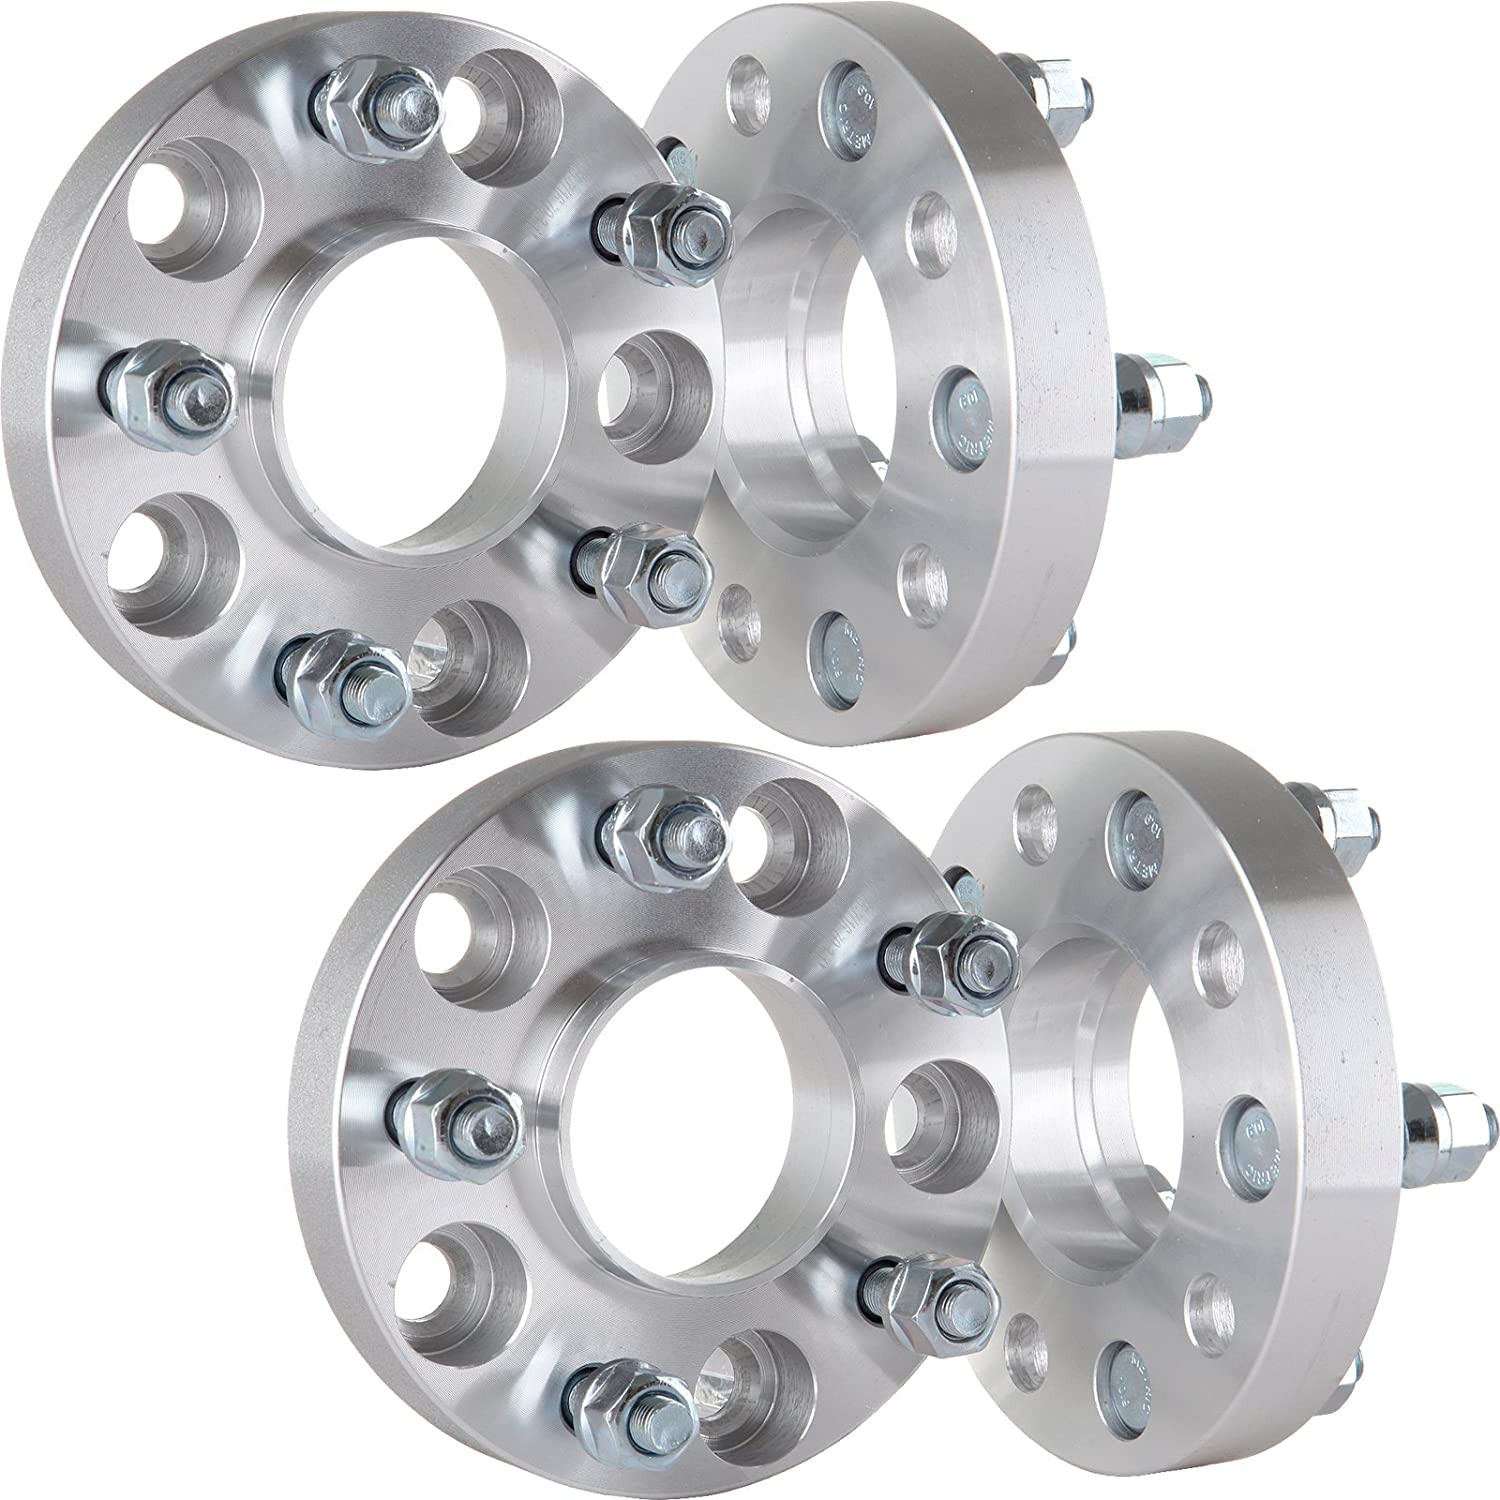 OCPTY 4x 1 HUBCENTRIC Wheel Spacers 5x4.75 5x120.65mm 7//16 Studs fit for 1968-1969 Buick GS 350 GS 400 LeSabre Chevrolet Impala Oldsmobile 442